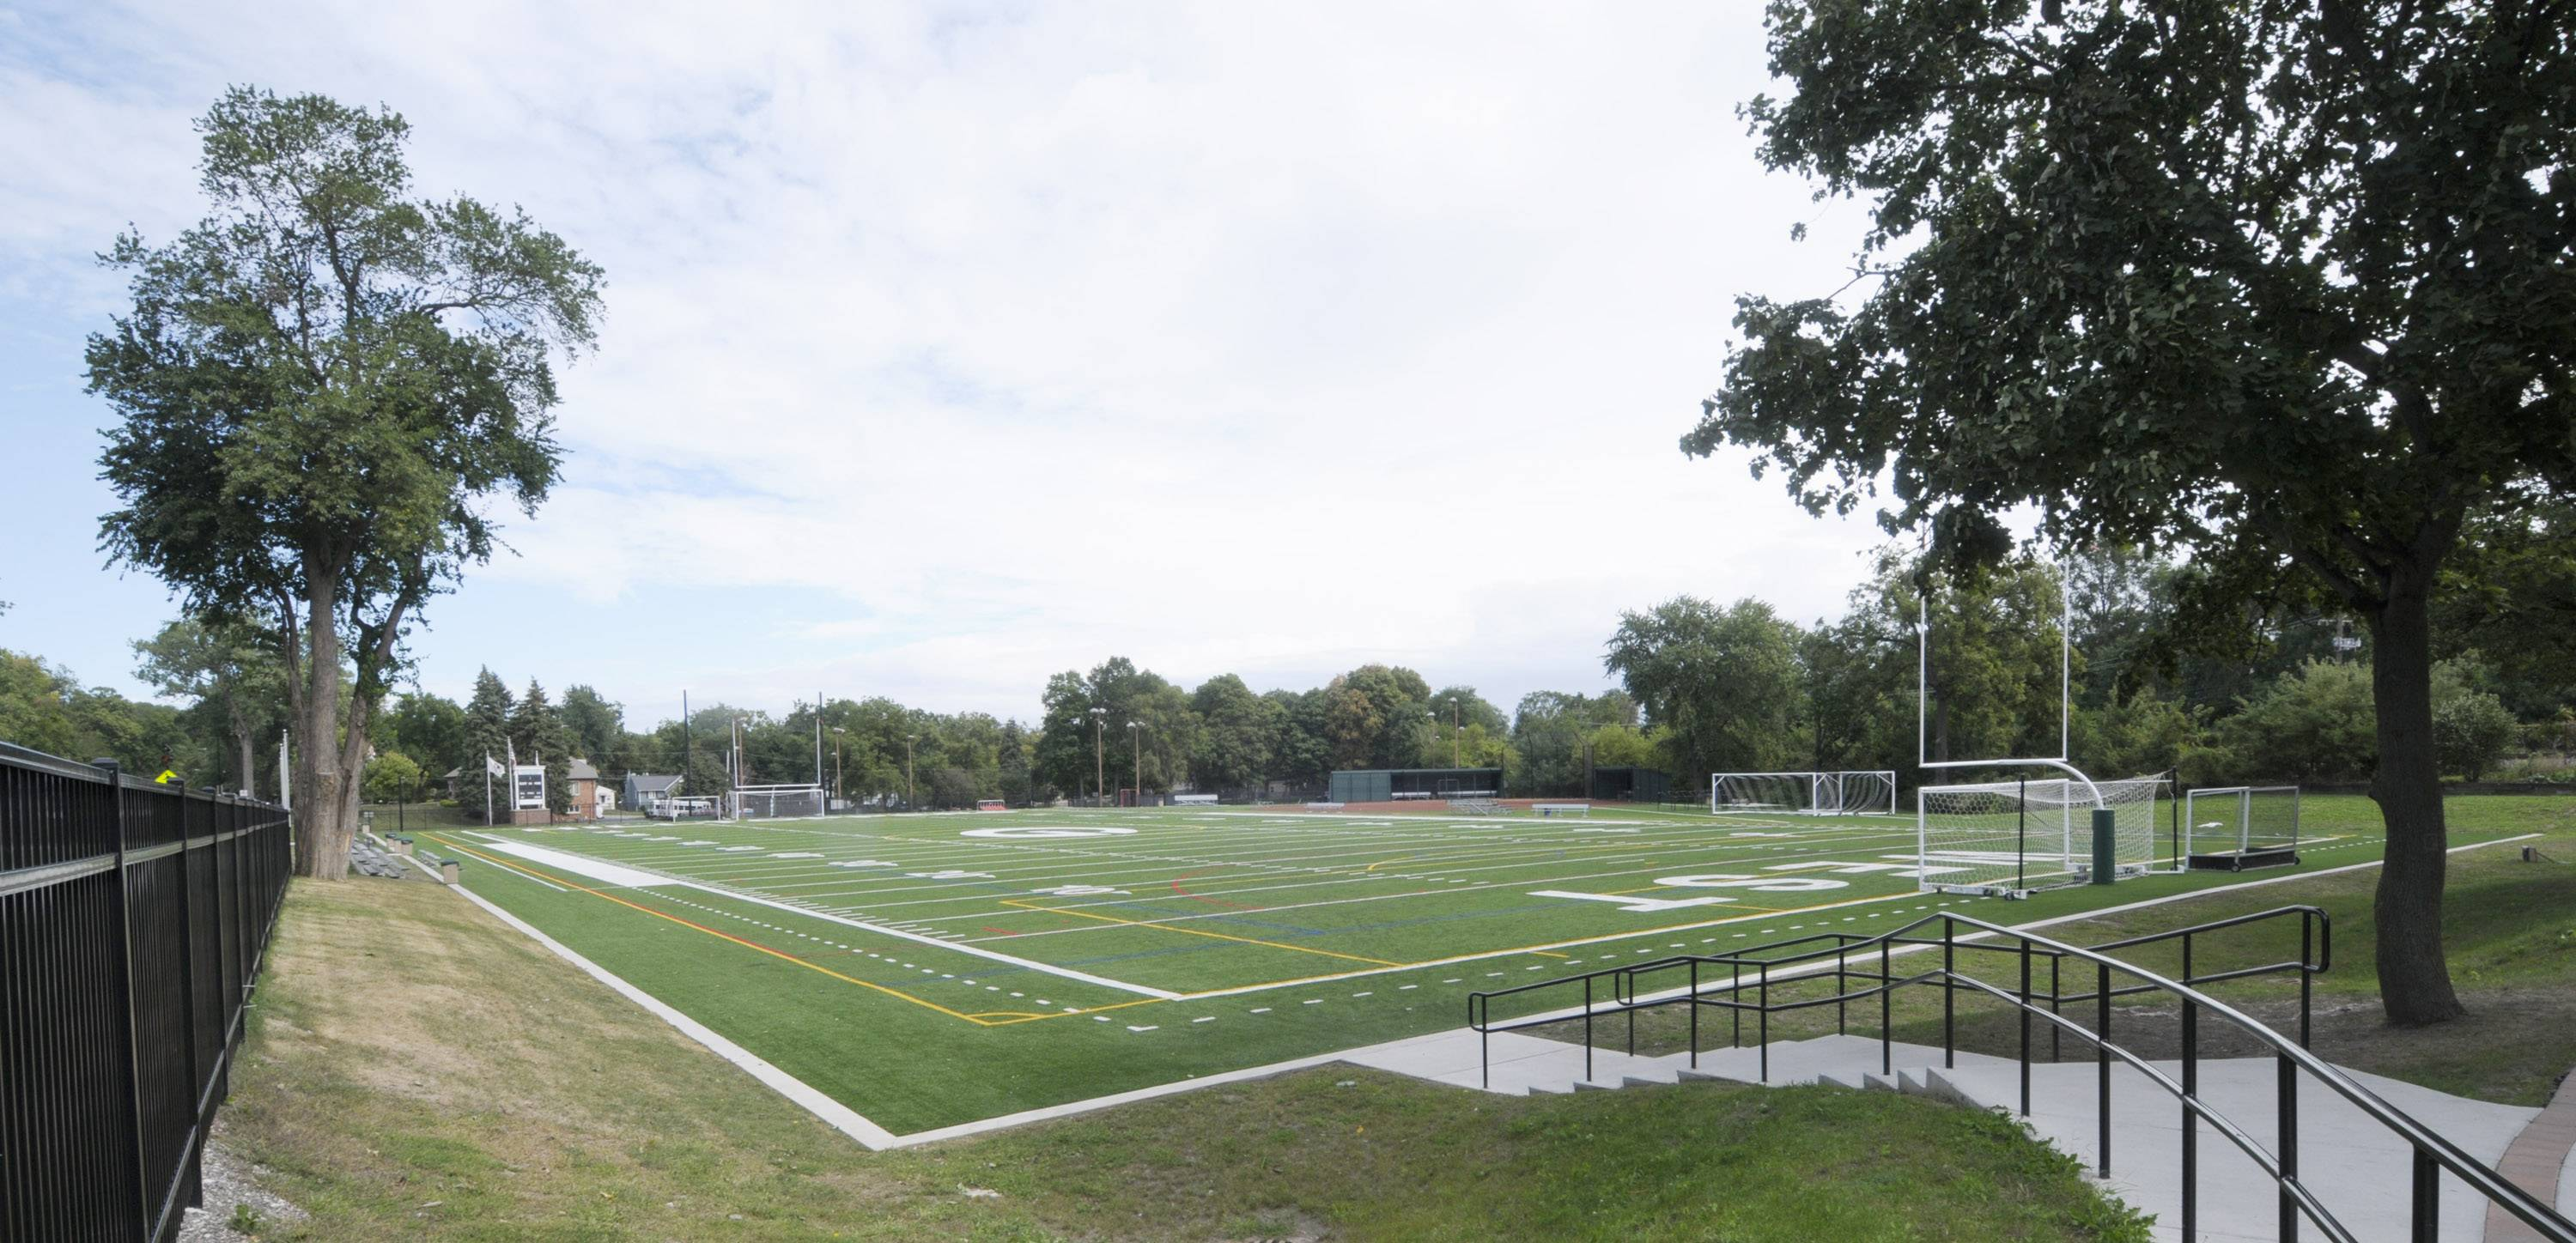 A group of Glenbard West parents are expected to attend the District 87 board of education meeting Monday to express concerns about what they feel is an unfair application of the district's athletic code.